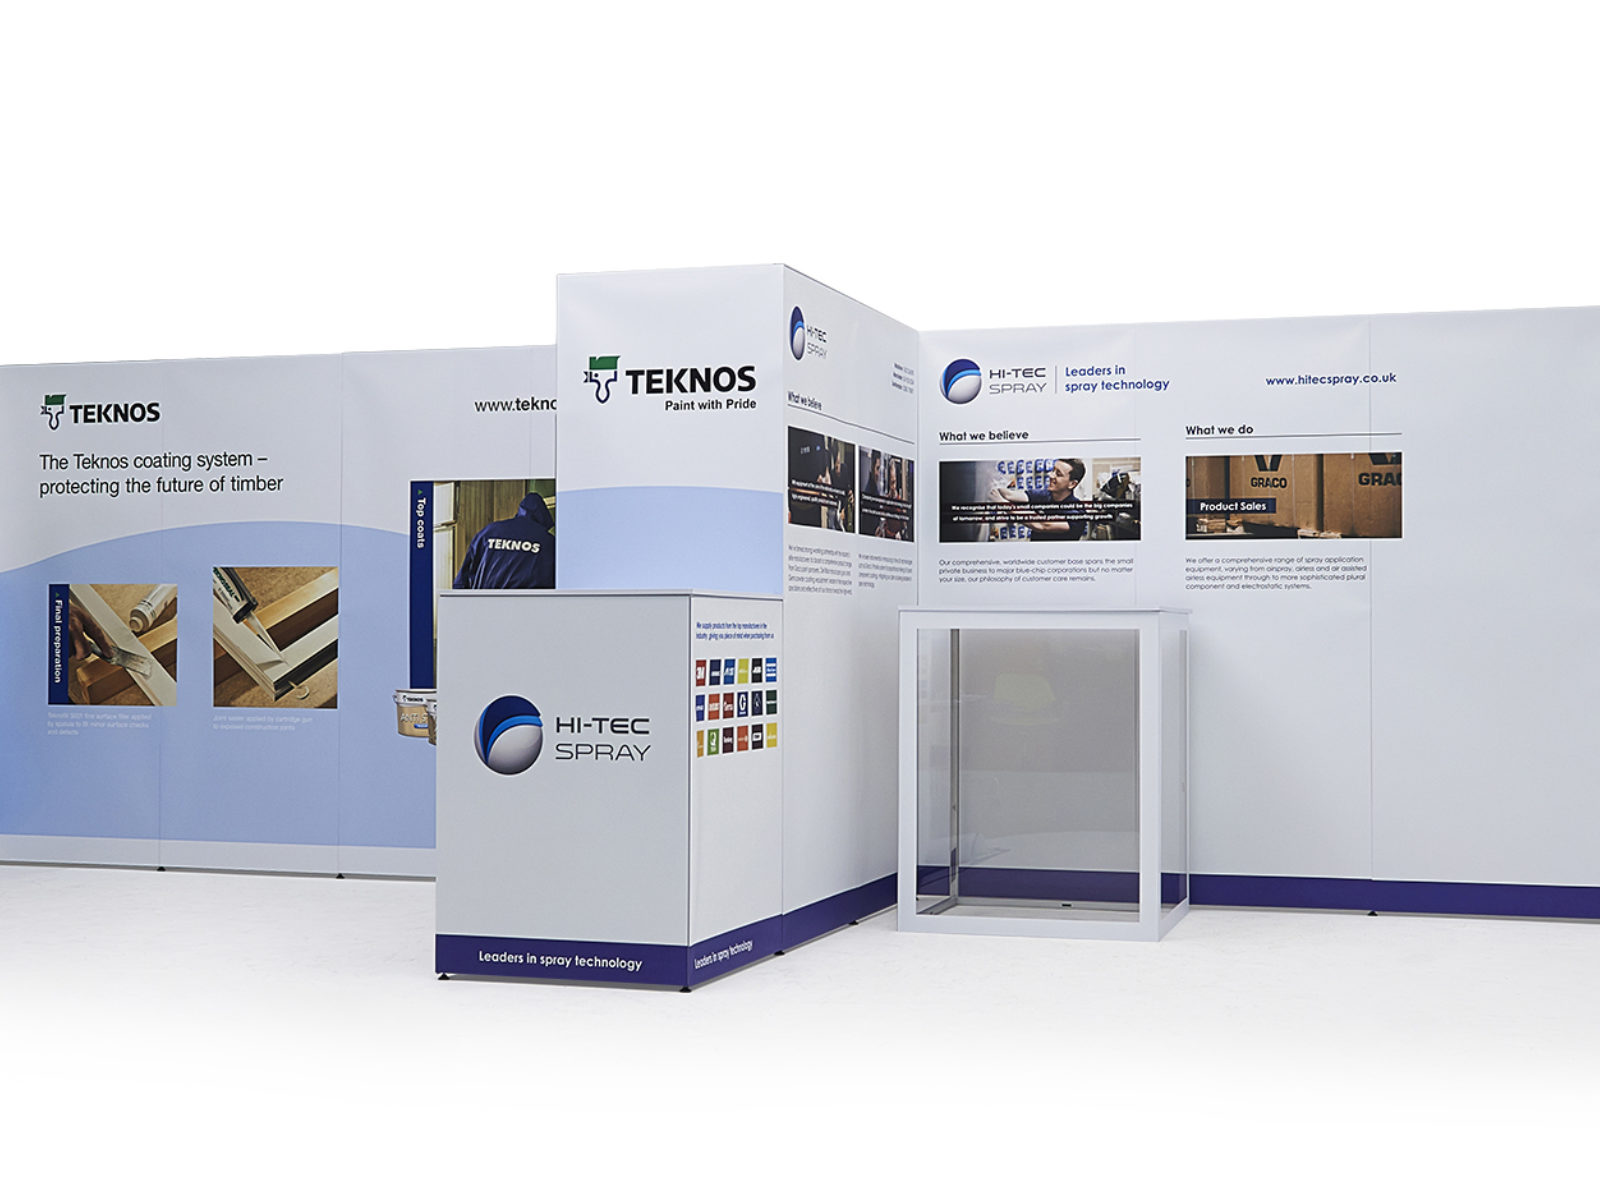 Exhibition Stand Graphics : Exhibition stand teknos b graphics